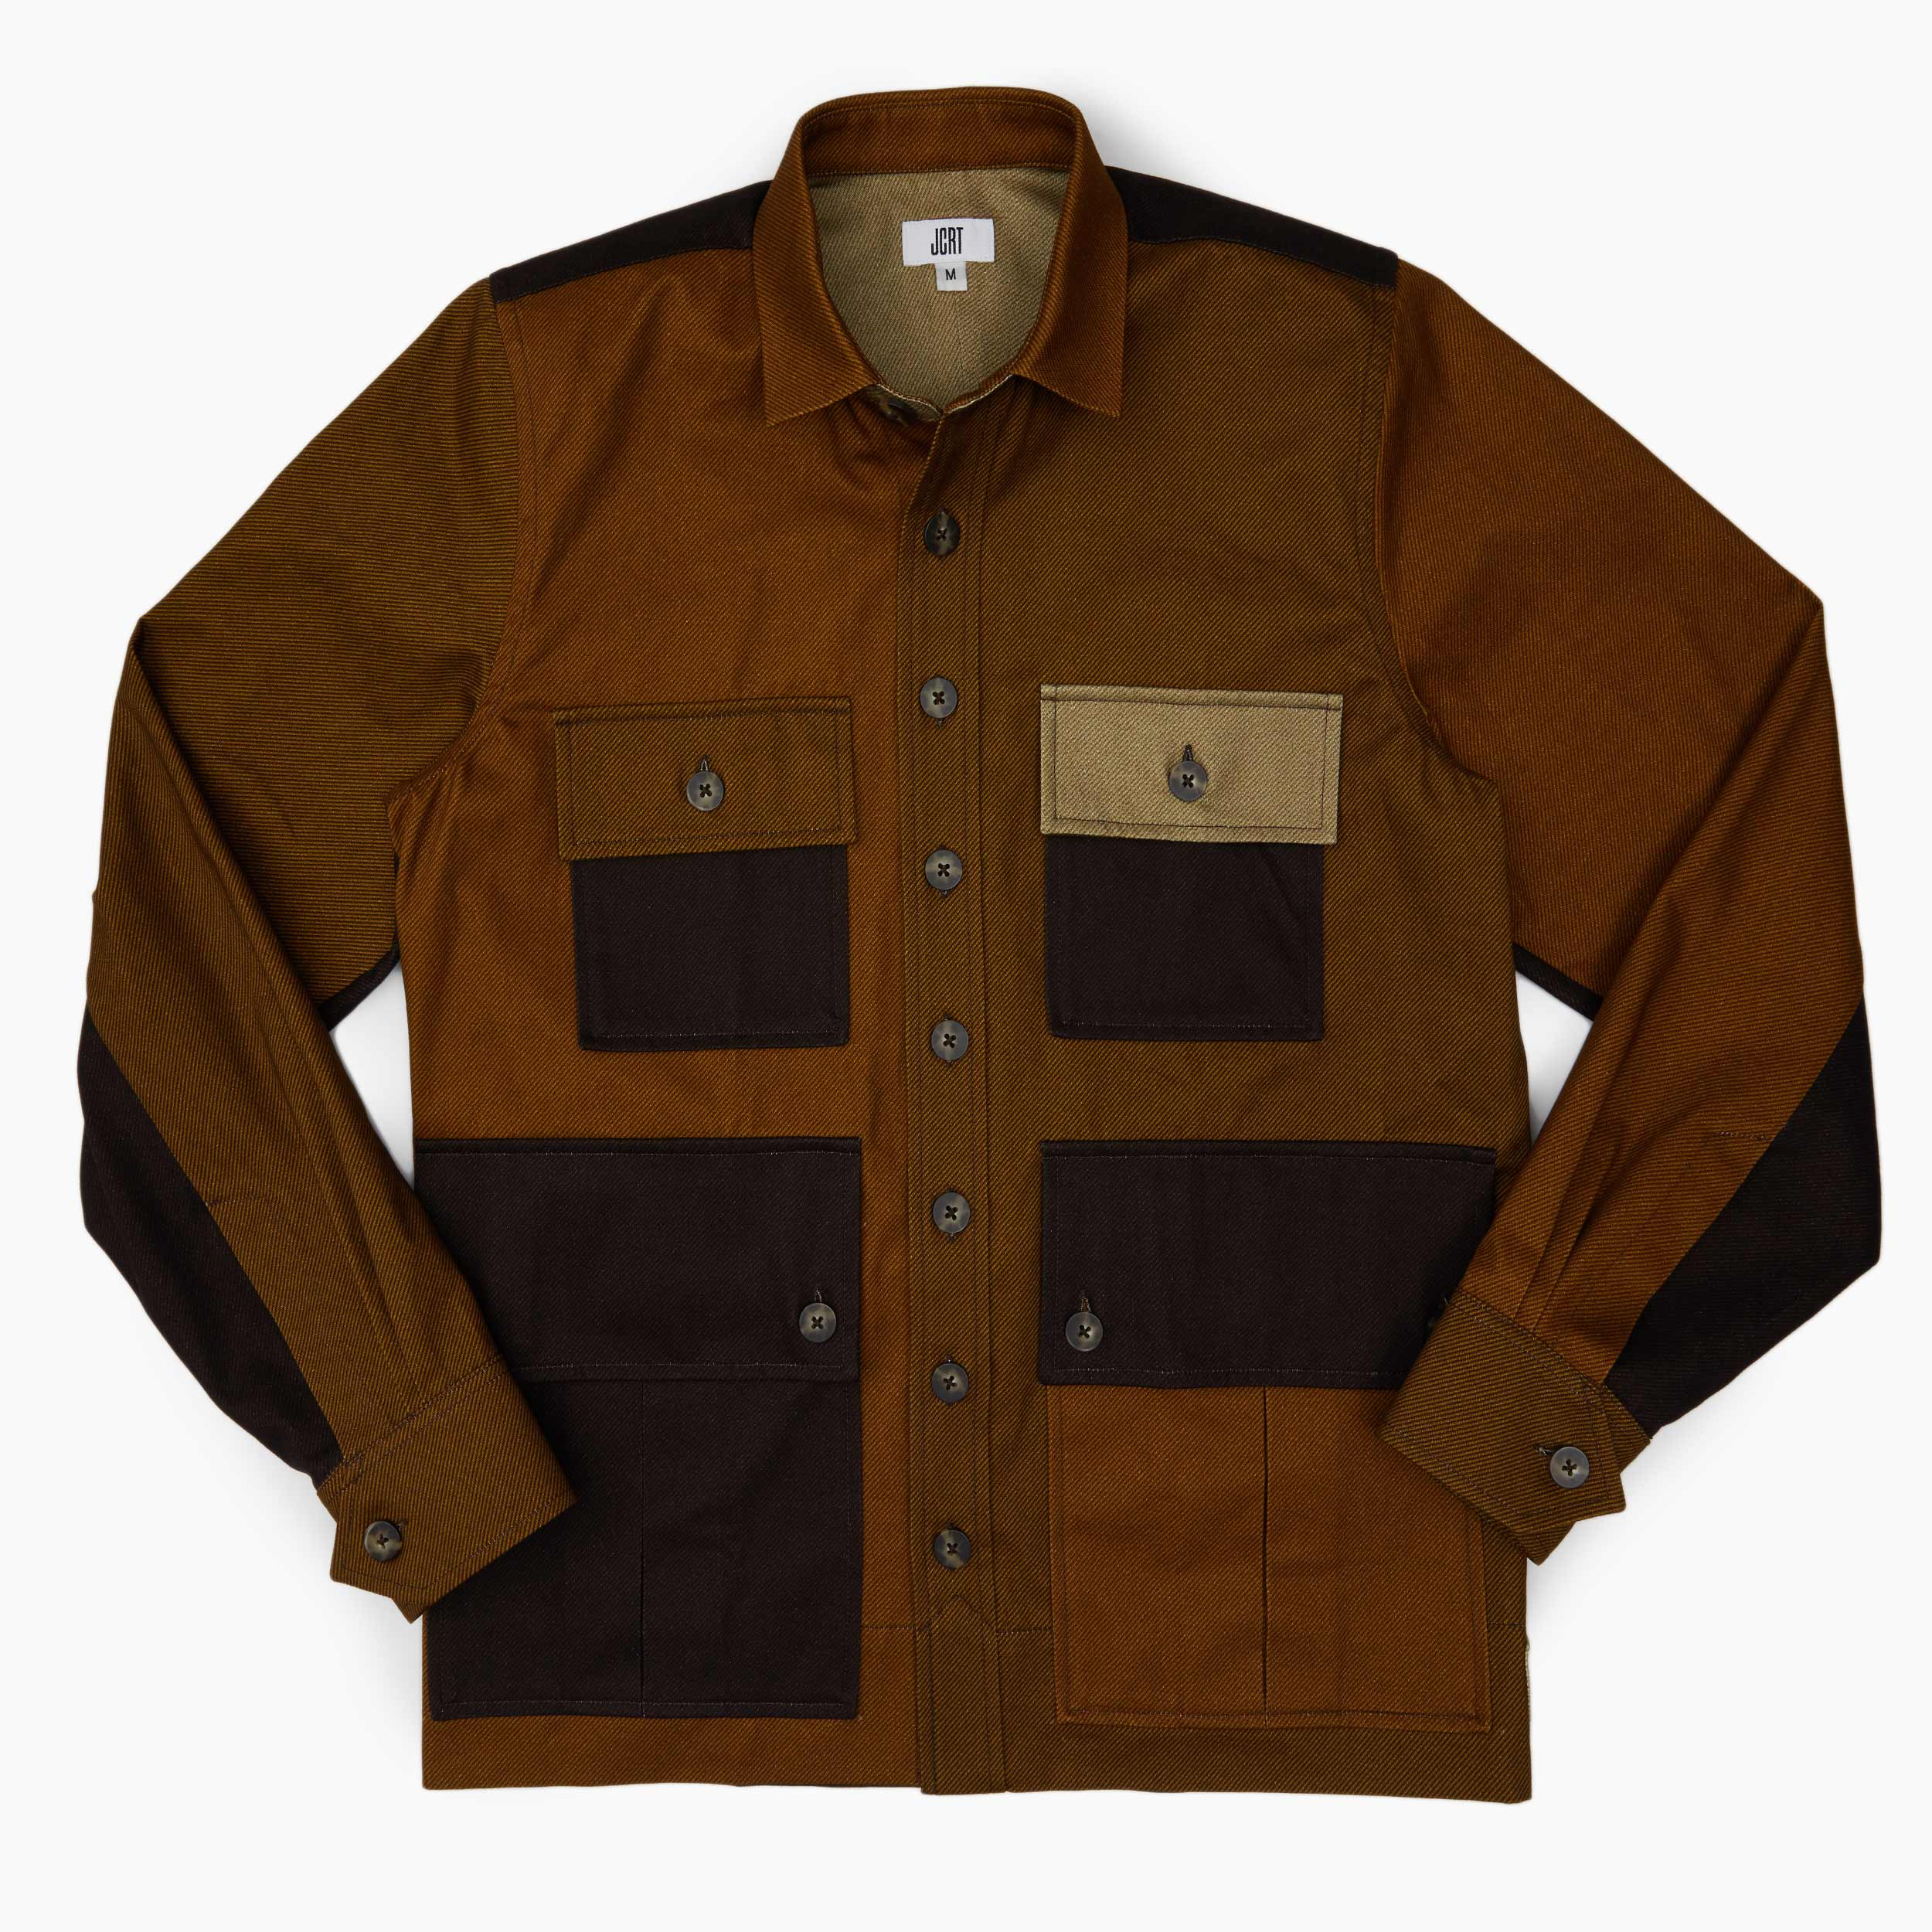 The Brown Mixed Twill Driving Jacket